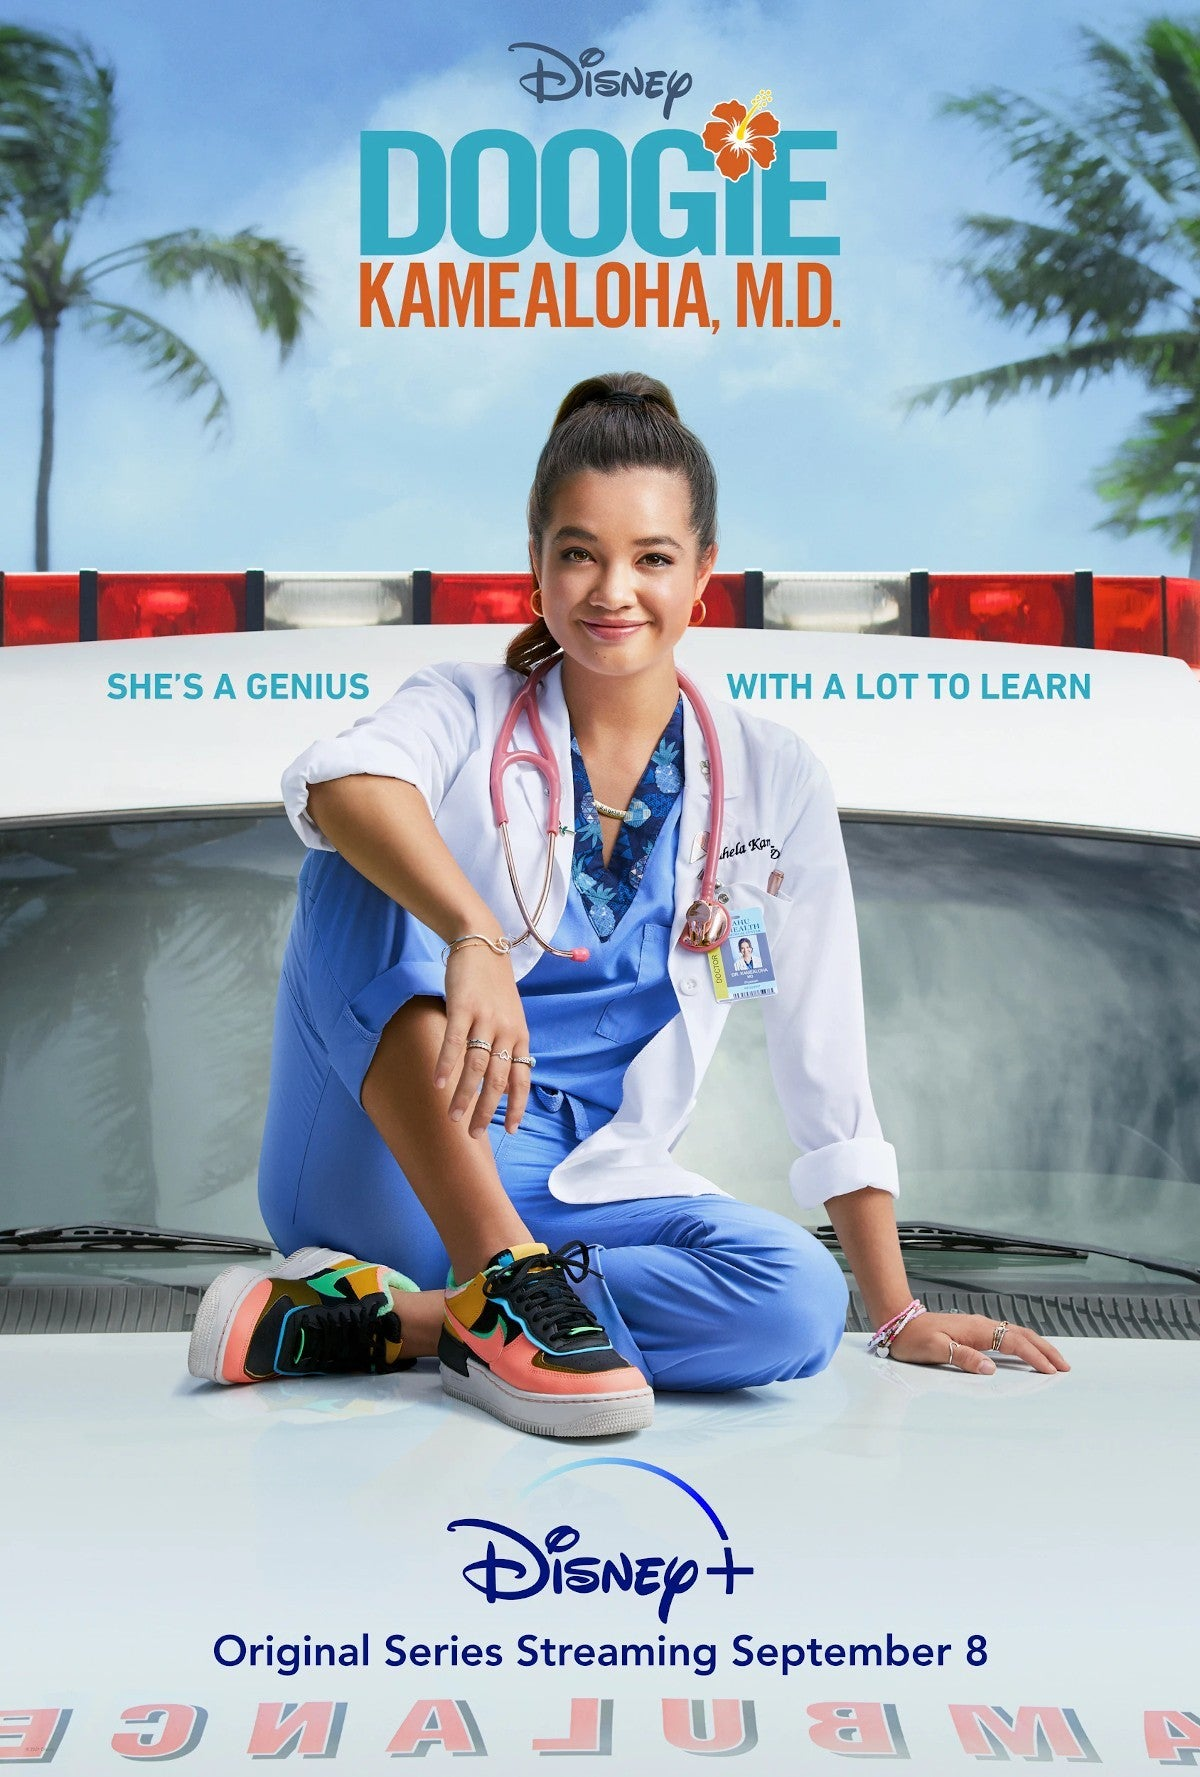 Doogie Kamealoha MD Opening Title Sequence Release Date Disney Plus